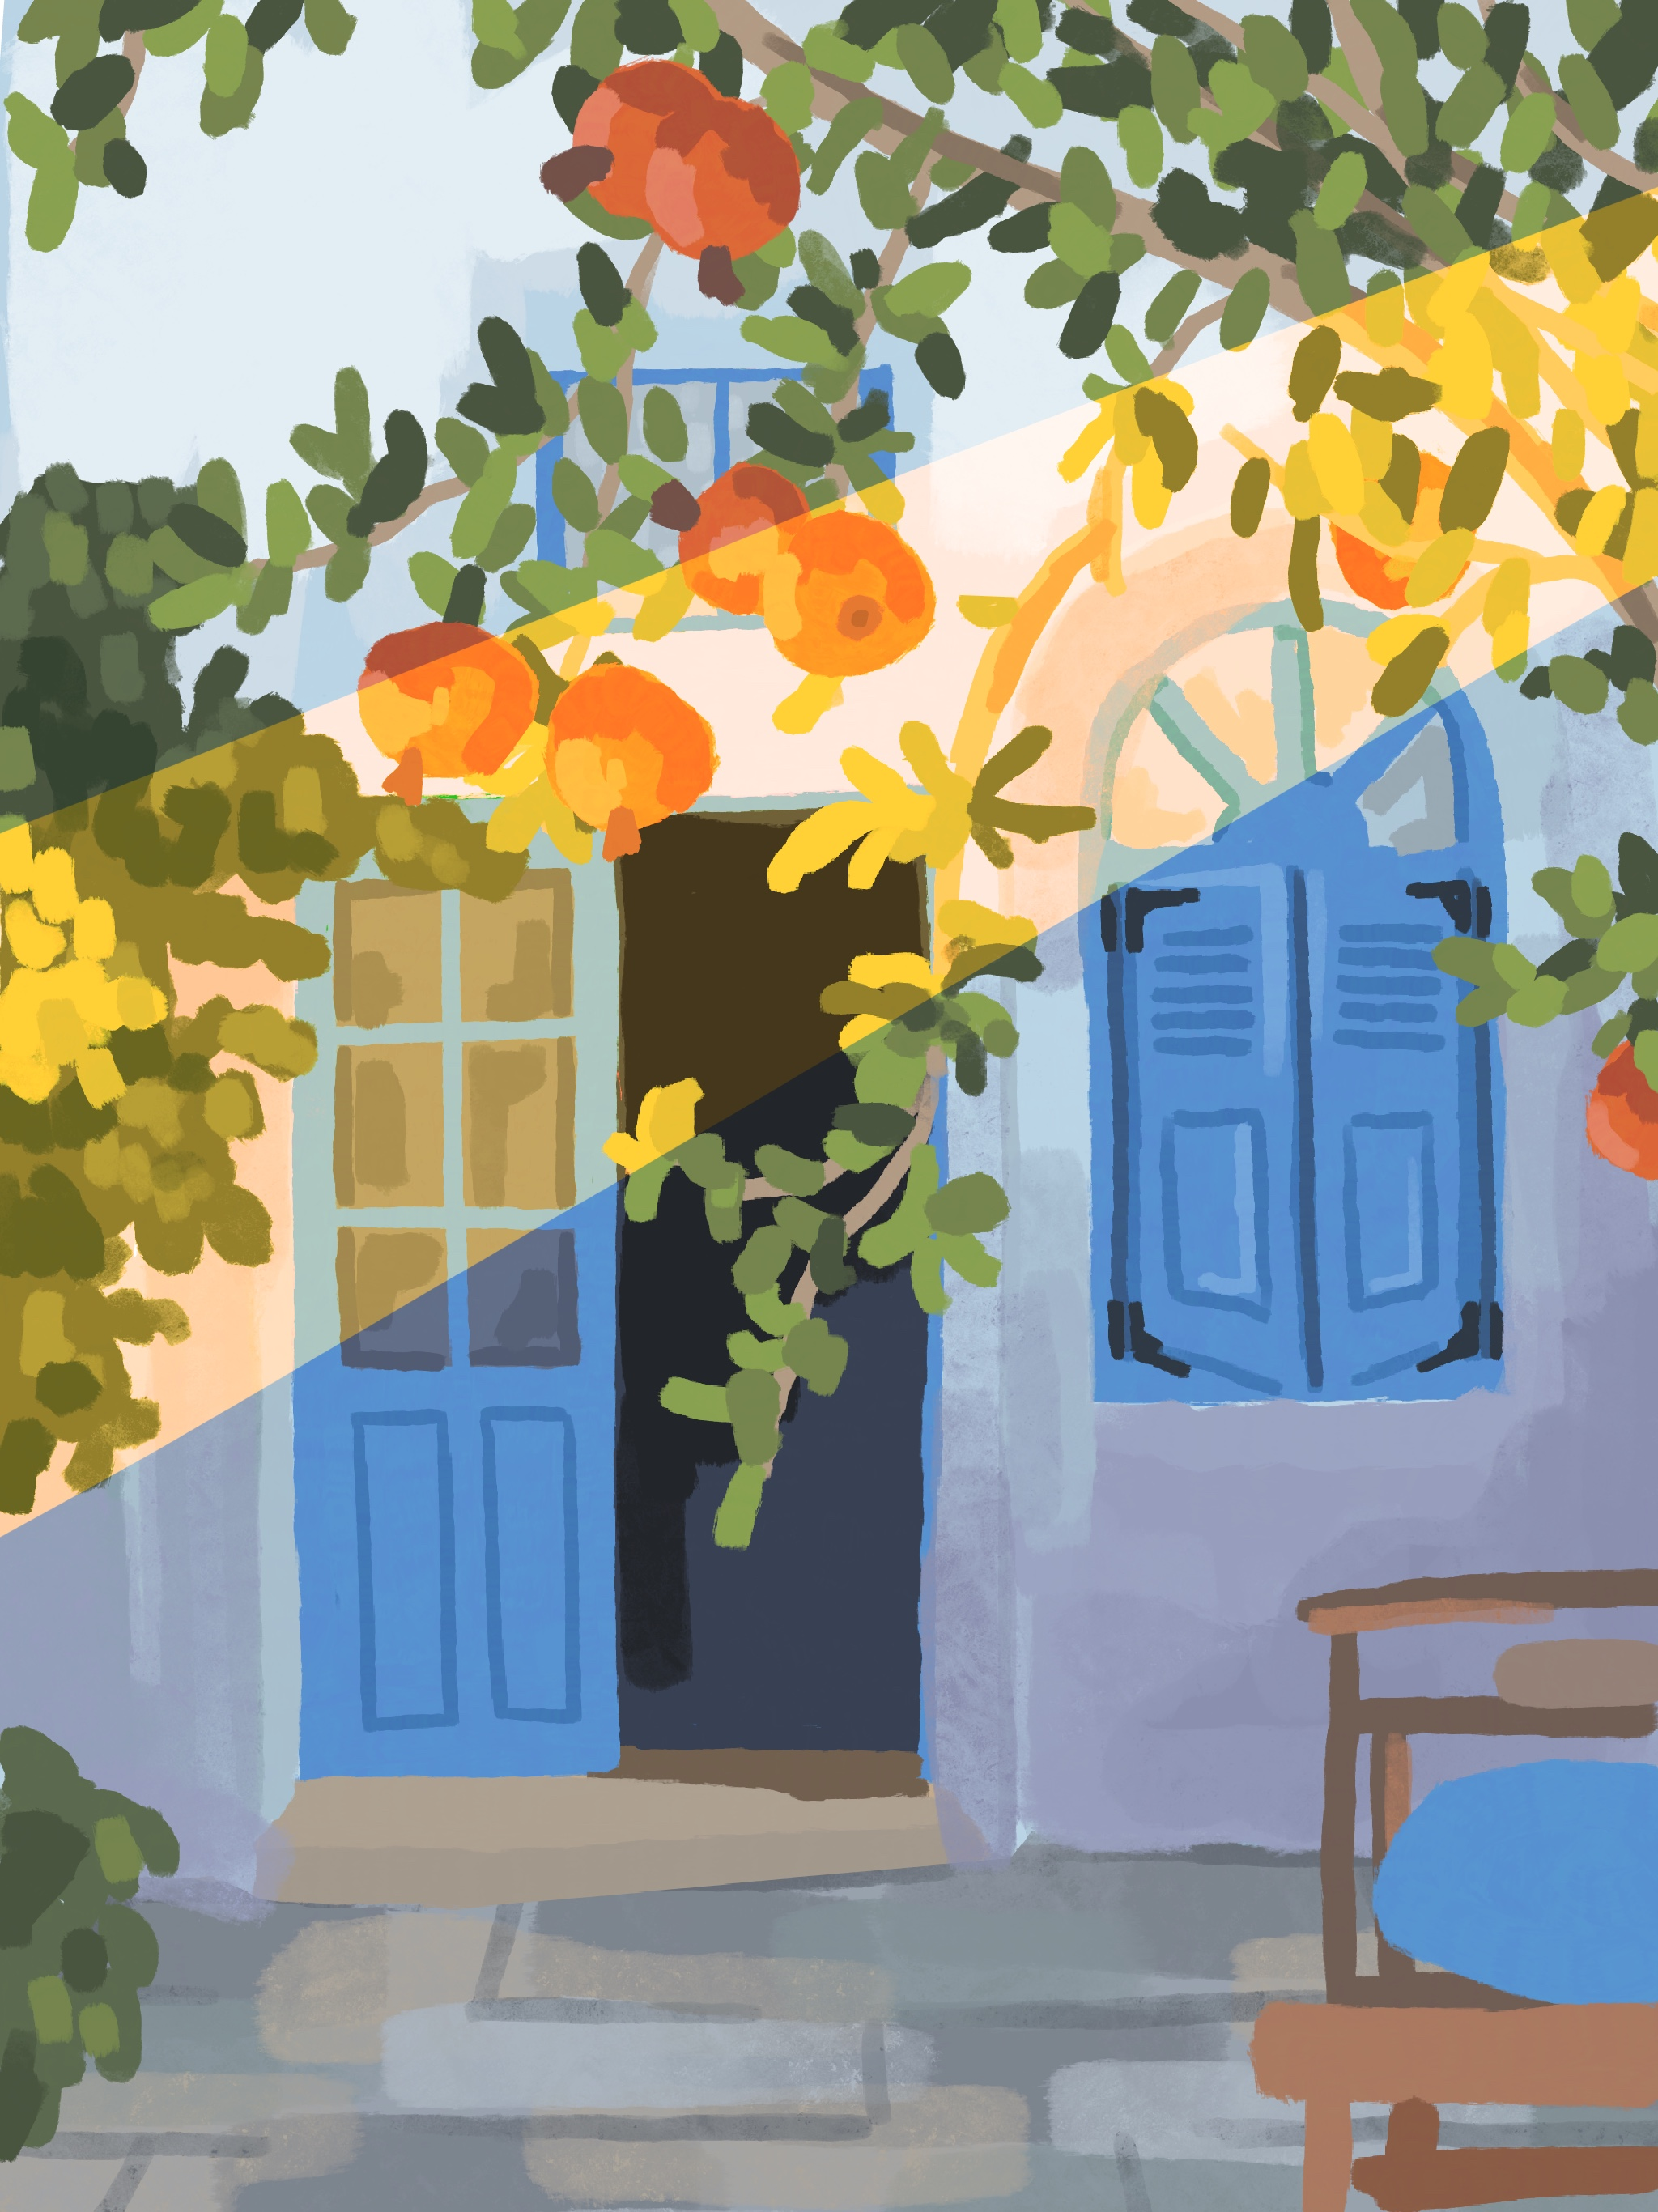 Digital painting of sunlight streaming in front of blue door surrounded by pomegranate tree branches